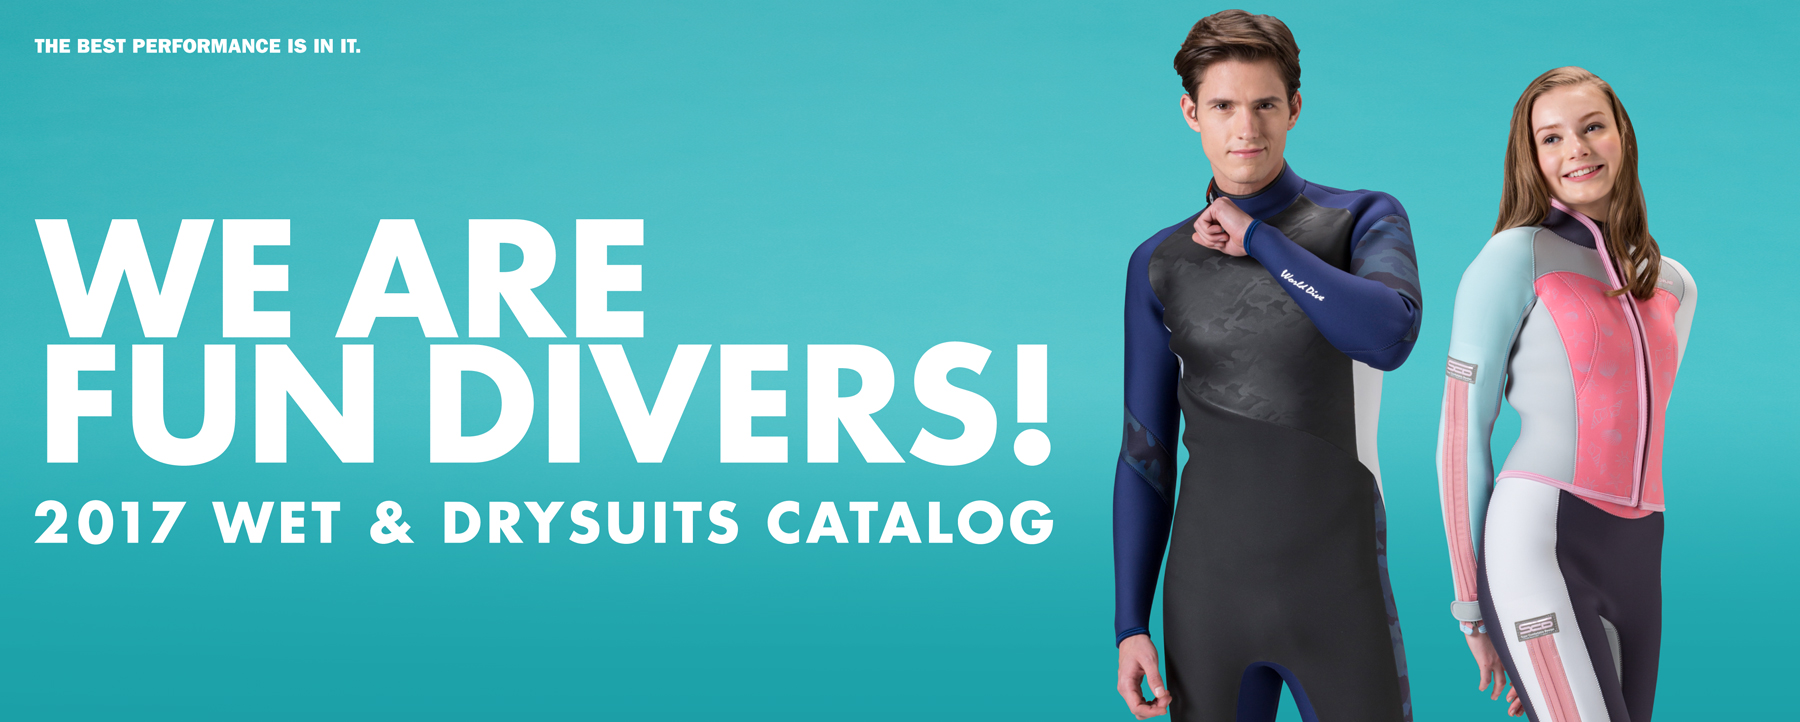 WE ARE FUN DIVERS! 2017 WET & DRYSUITS CATALOG